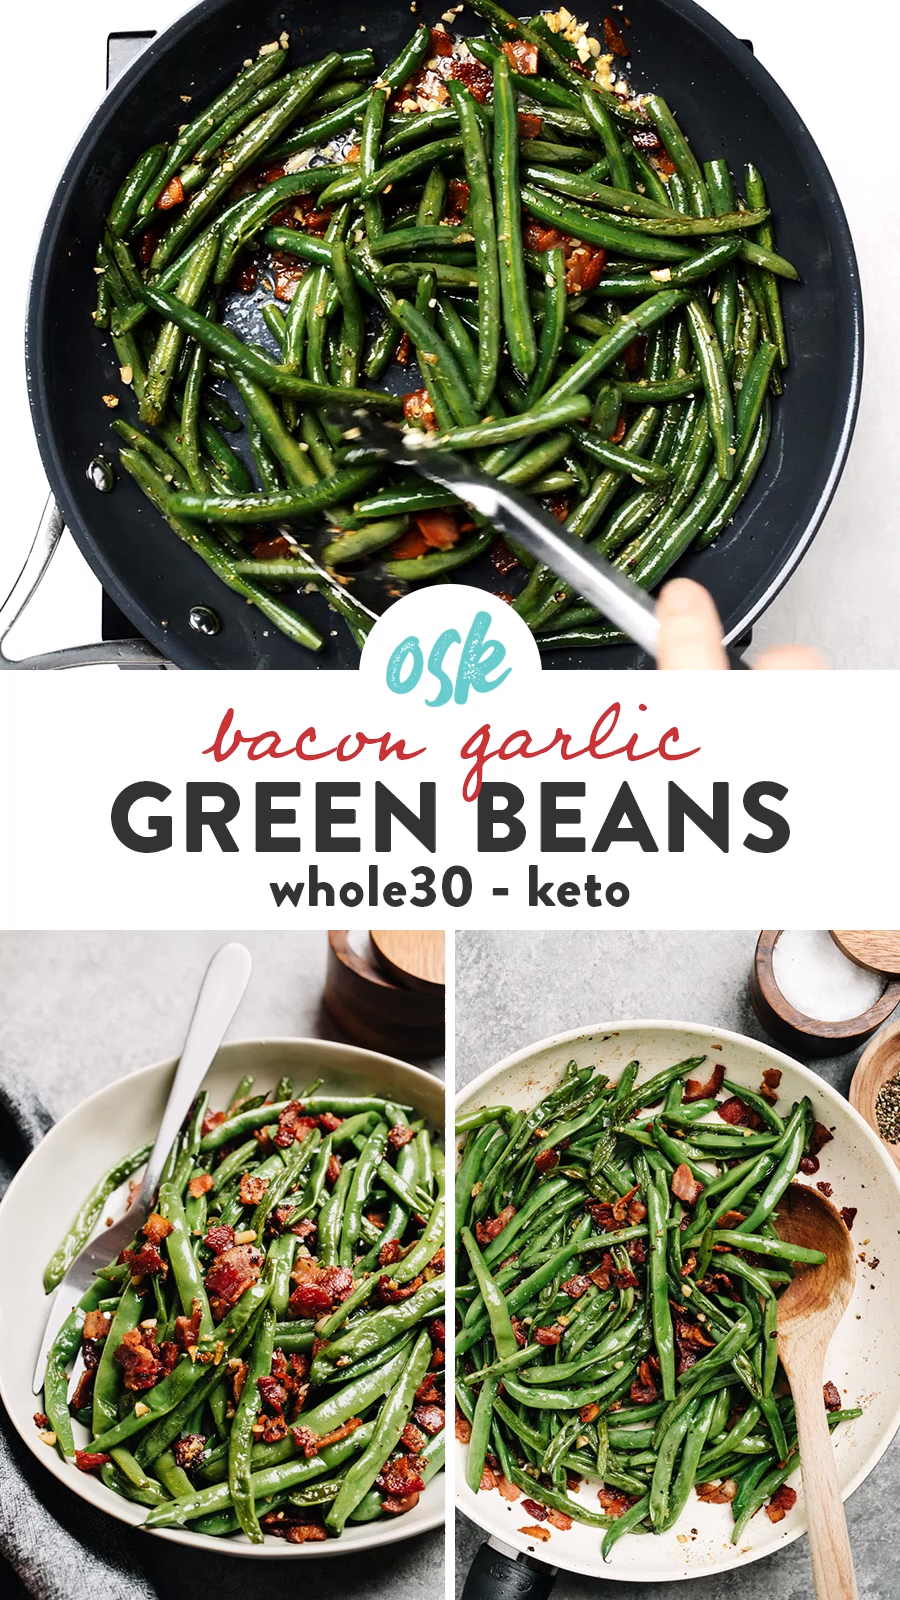 Green beans with bacon are the fast and easy side dish you need for everything from weeknight dinners to holiday celebrations like Thanksgiving and Christmas. Ready in 20 minutes using one pan and just four real, whole food ingredients, these green beans are incredibly easy and packed with huge flavor! Naturally keto, Whole30, paleo, gluten free and dairy free, they're an excellent holiday recipe for a crowd. #sidedish #thanksgiving #quickandeasy #whole30 #keto #dairyfree